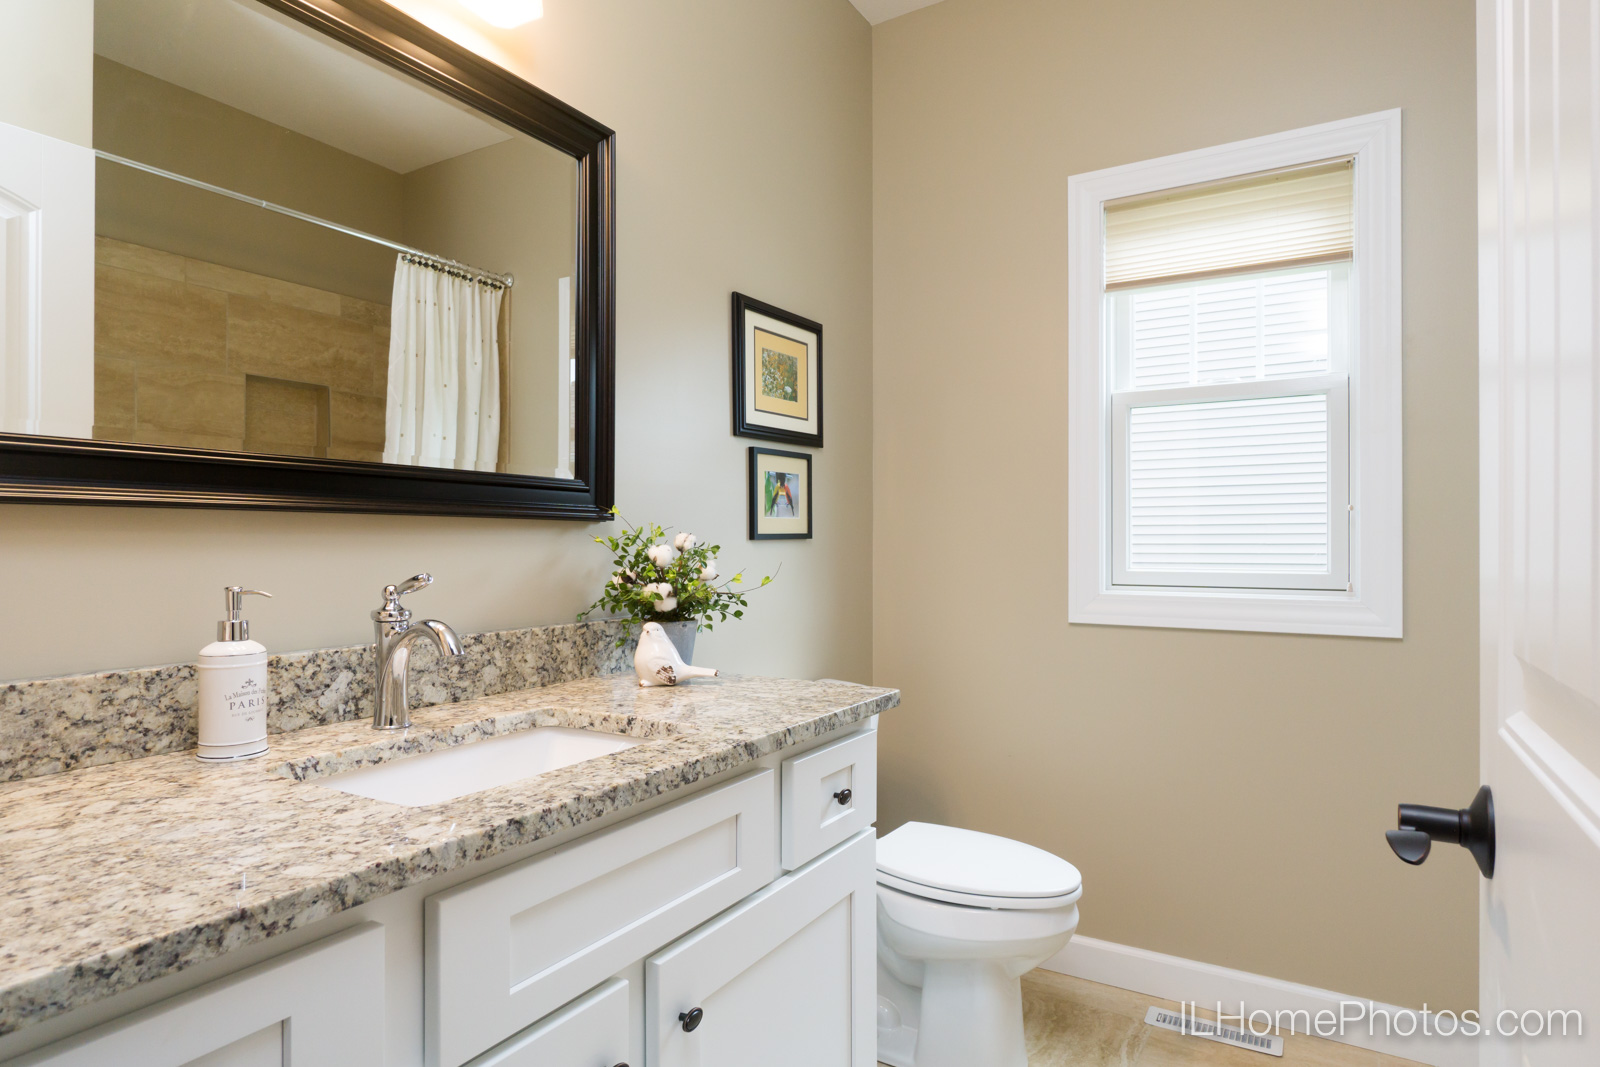 Interior bathroom photograph for real estate in Springfield, IL :: Illinois Home Photography by Michael Gowin, Lincoln, IL